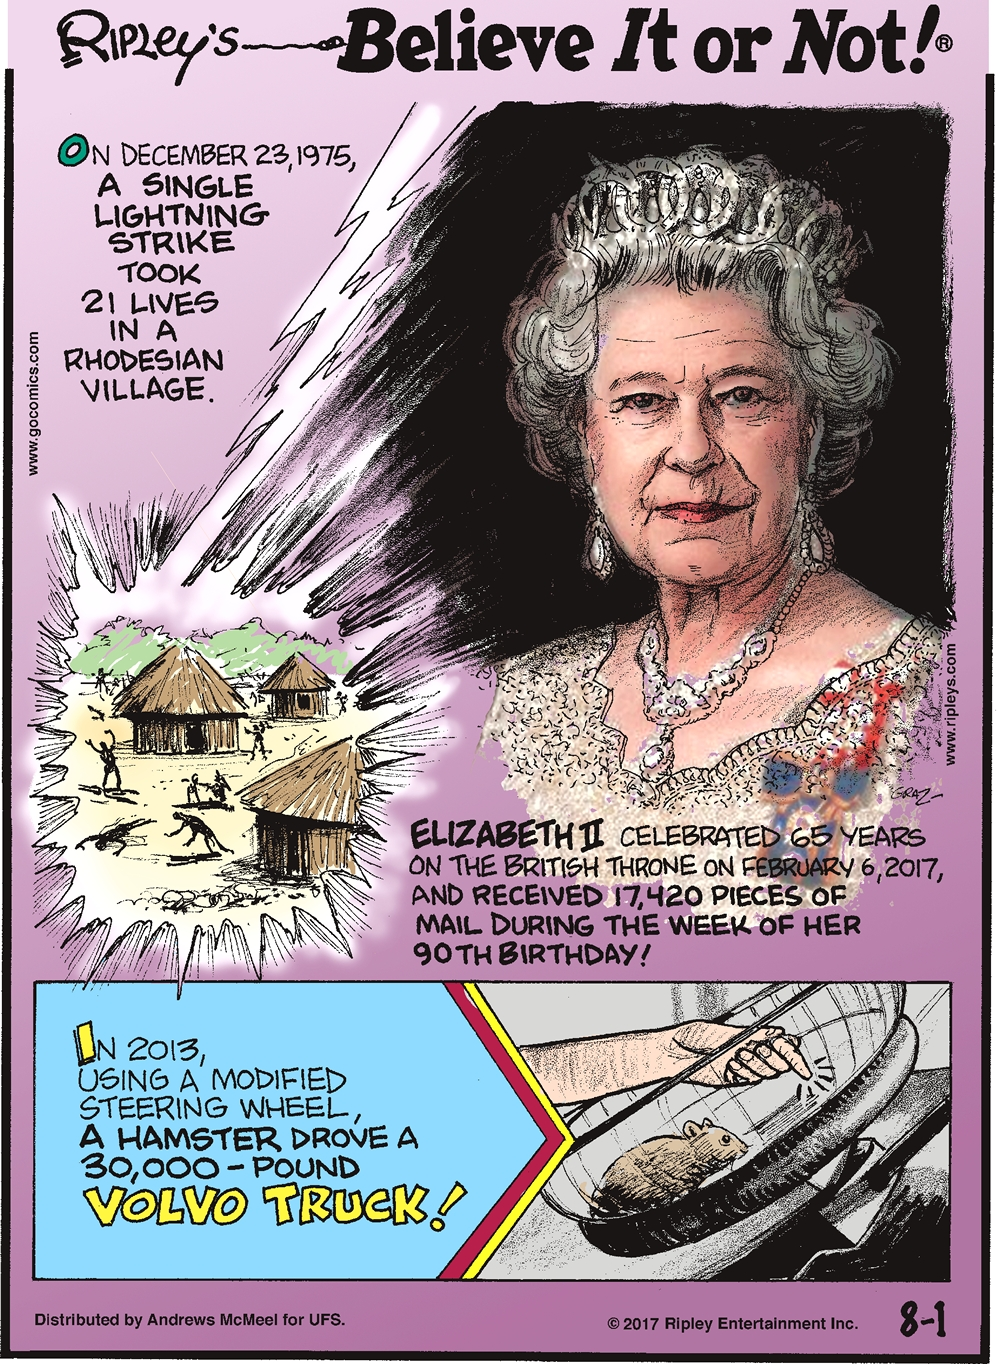 On December 23, 1975, a single lightning strike took 21 lives in a Rhodesian Village.-------------------- Elizabeth II celebrated 65 years on the British Throne on February 6, 2017, and received 17,420 pieces of mail during the week of her 90th birthday!-------------------- In 2013, using a modified steering wheel, a hamster drove a 30,000-pound Volvo truck!